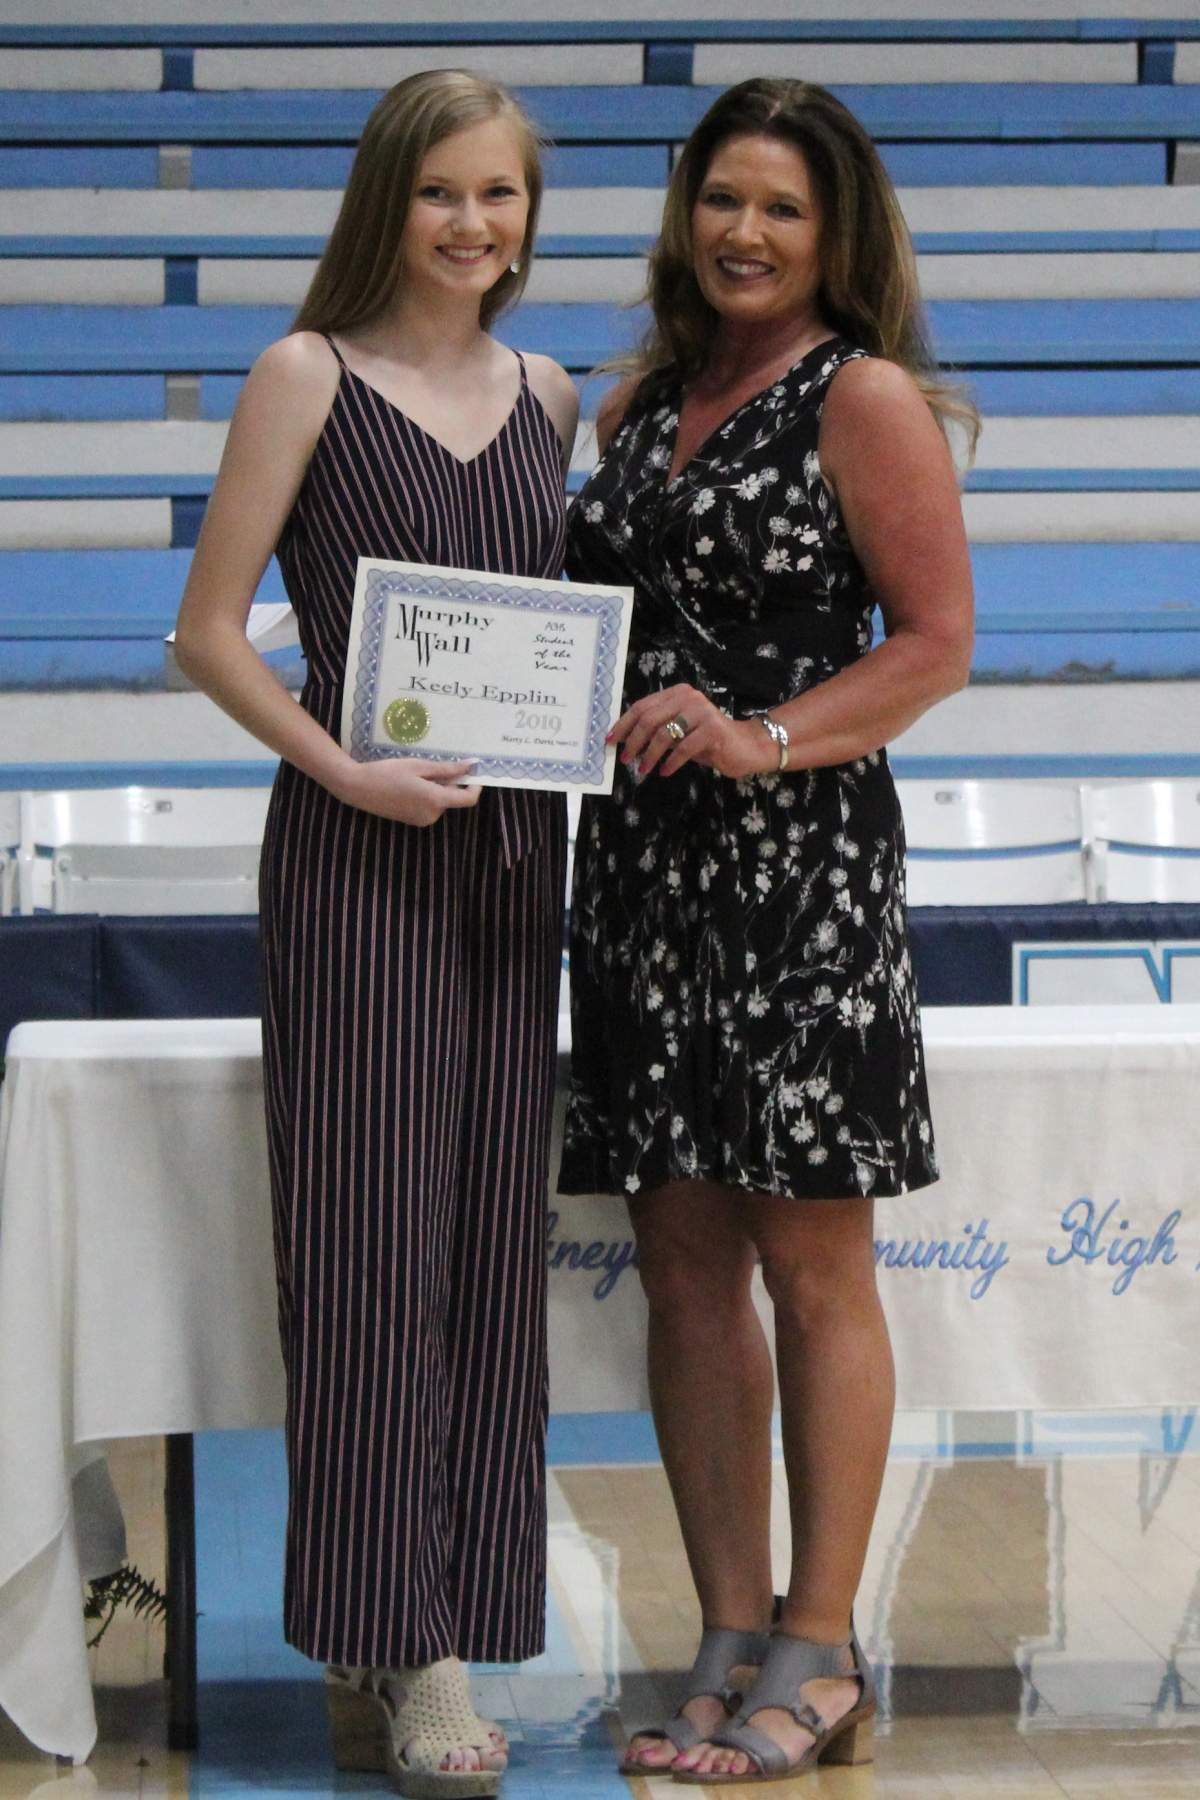 Murphy-Wall State Bank employee give PCHS student Keely Epplin the Student of the Year Award